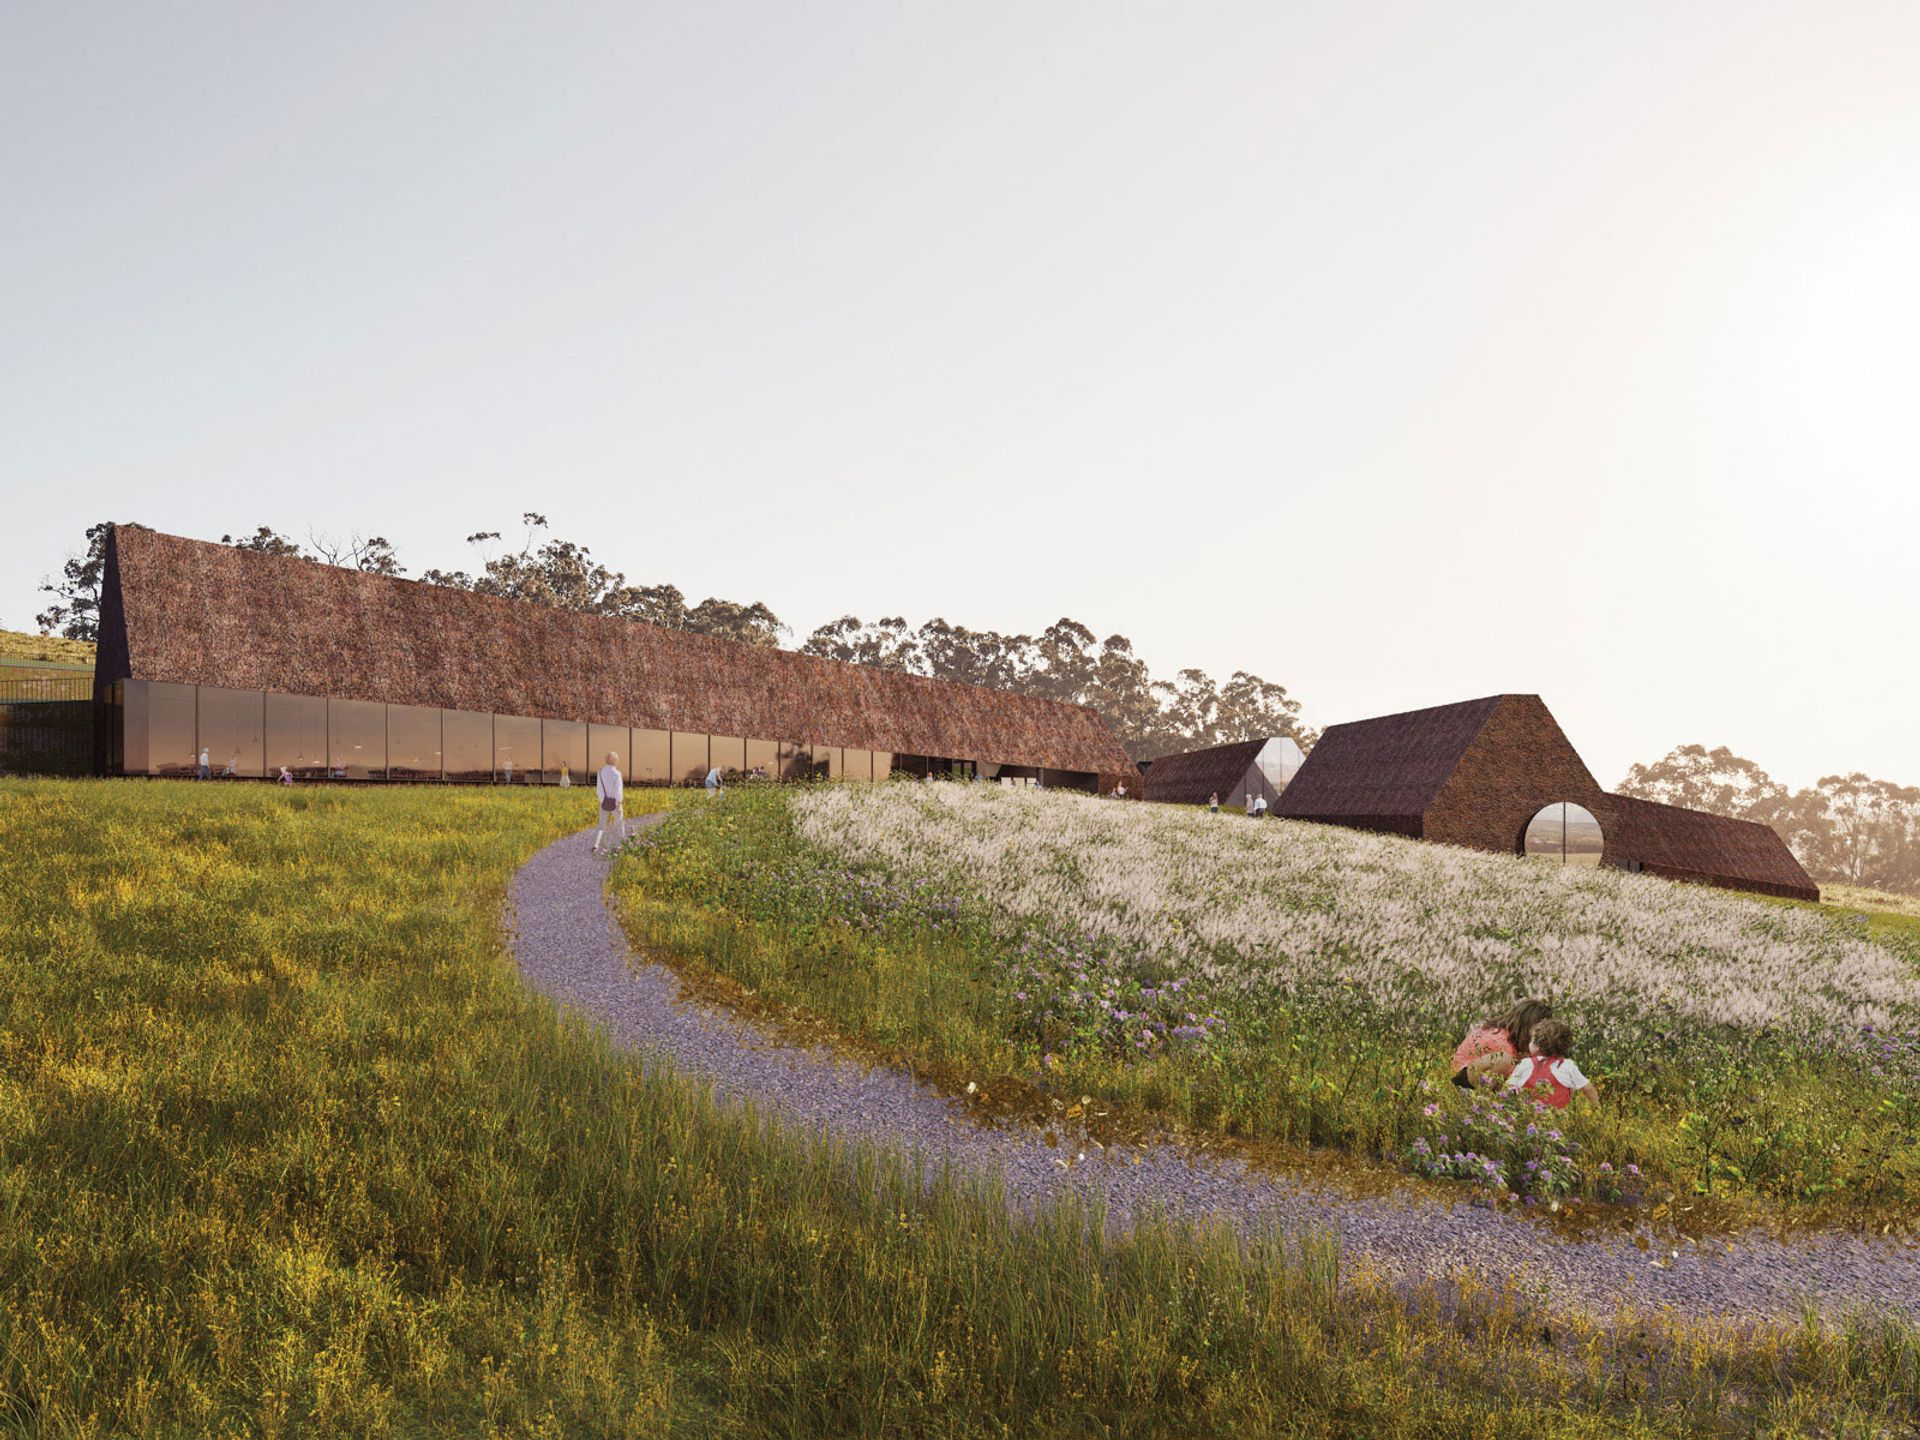 A rendering of Rosemaur Gallery, a proposed A$50m ($39m) new museum 40km east of Melbourne that would house works by Francis Bacon, Lucian Freud, Gustav Klimt, Egon Schiele as well as a bird sanctuary, a landscaped garden and a fine-dining restaurant © Architecture Associates